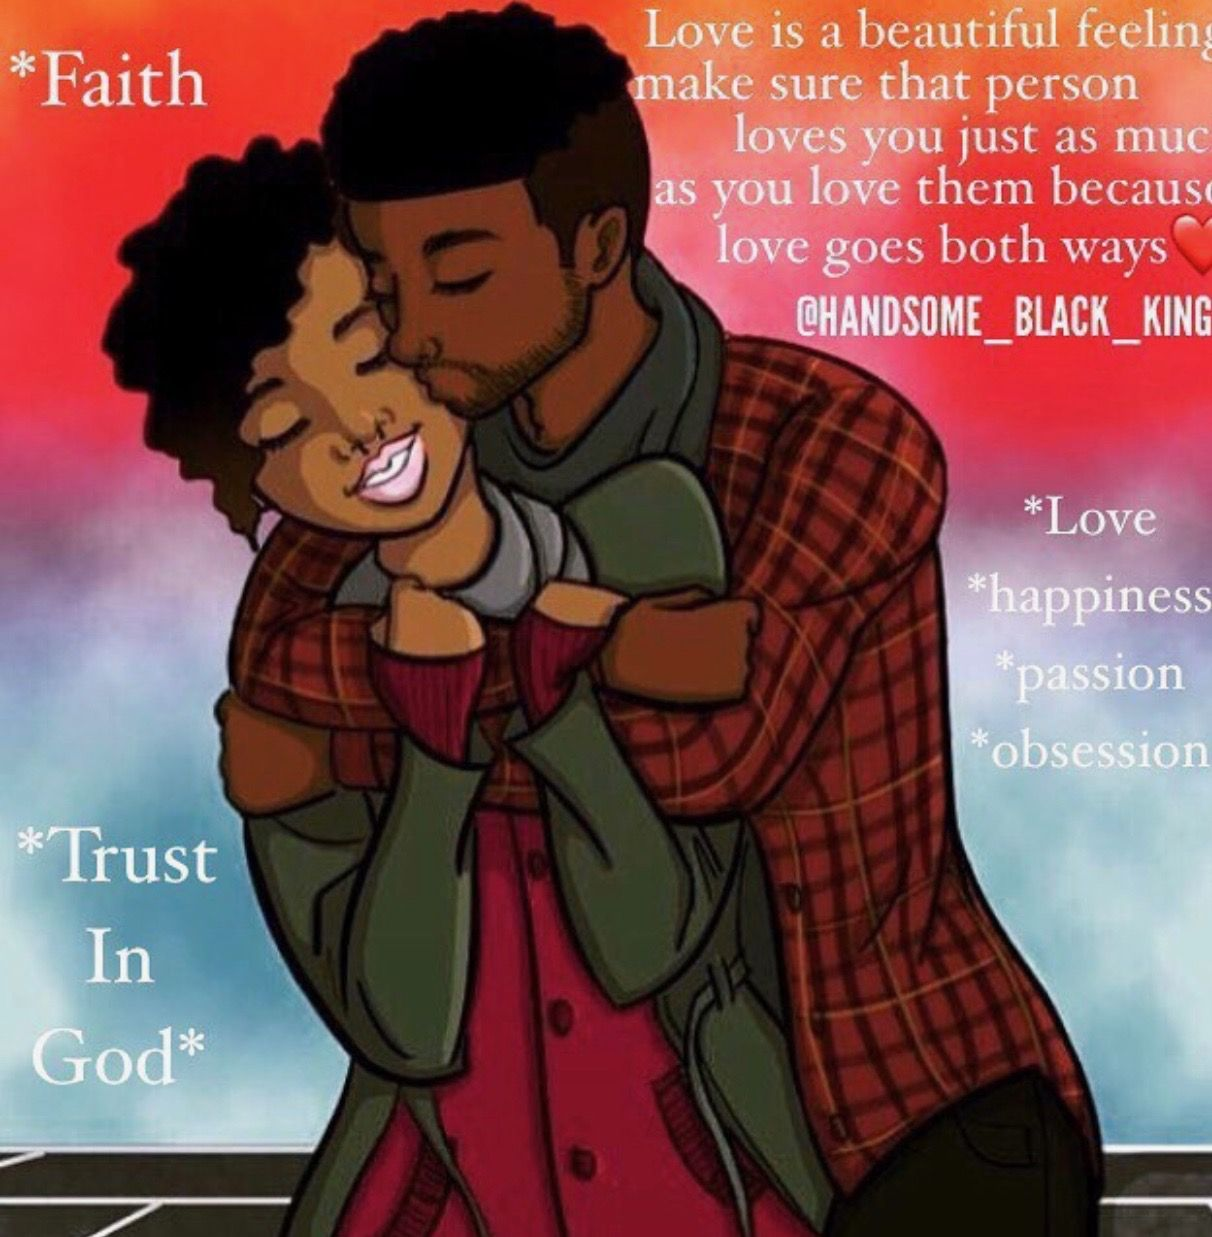 Love & happiness quotes and things Black couple art